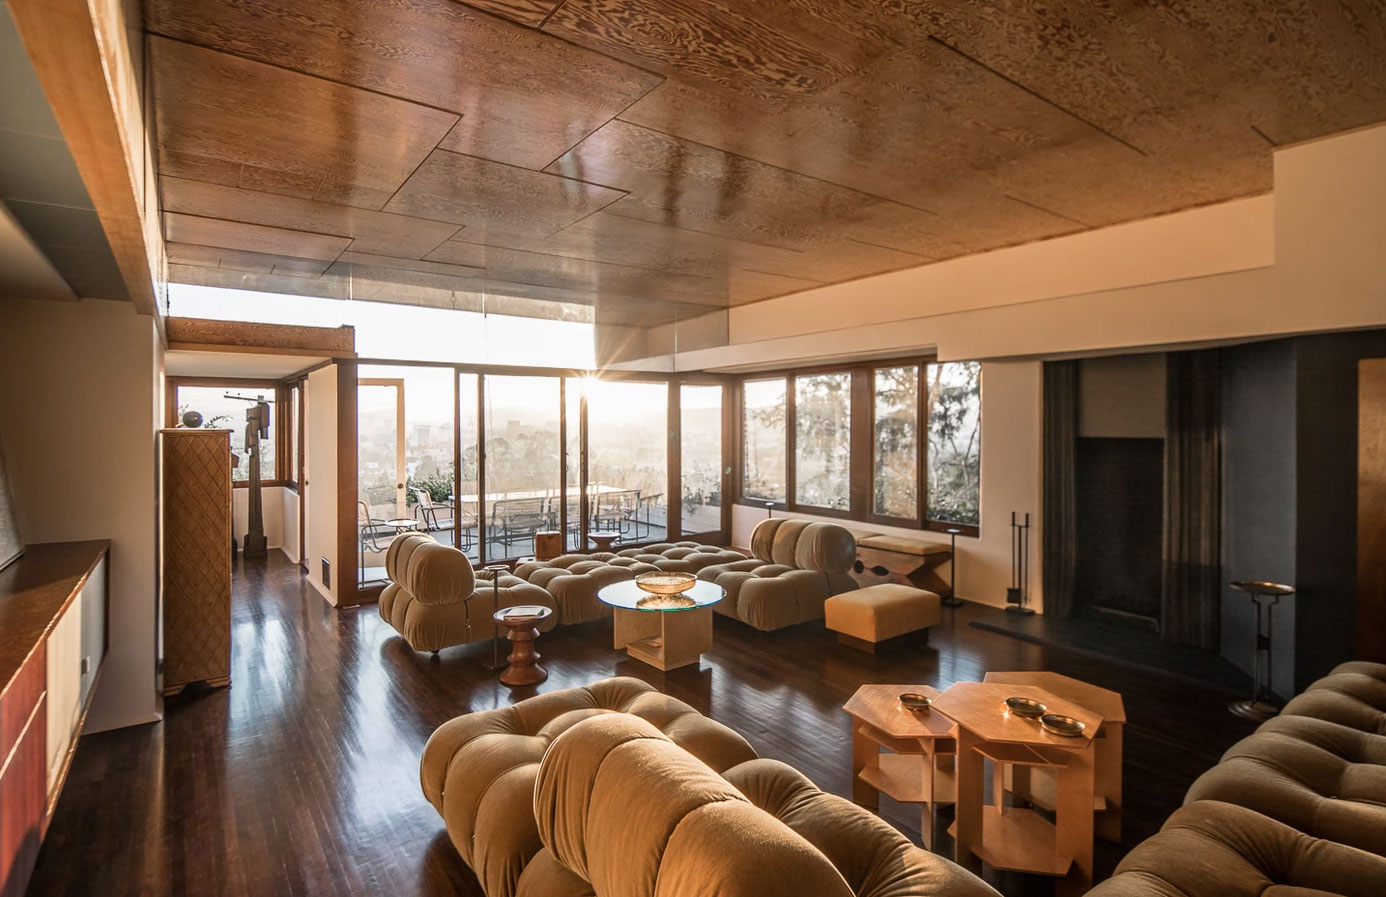 Rudolph M Schindler's S T and Pauline Falk Apartments building is fresh from a refurb and is on the market in Los Angeles for $3.65m.